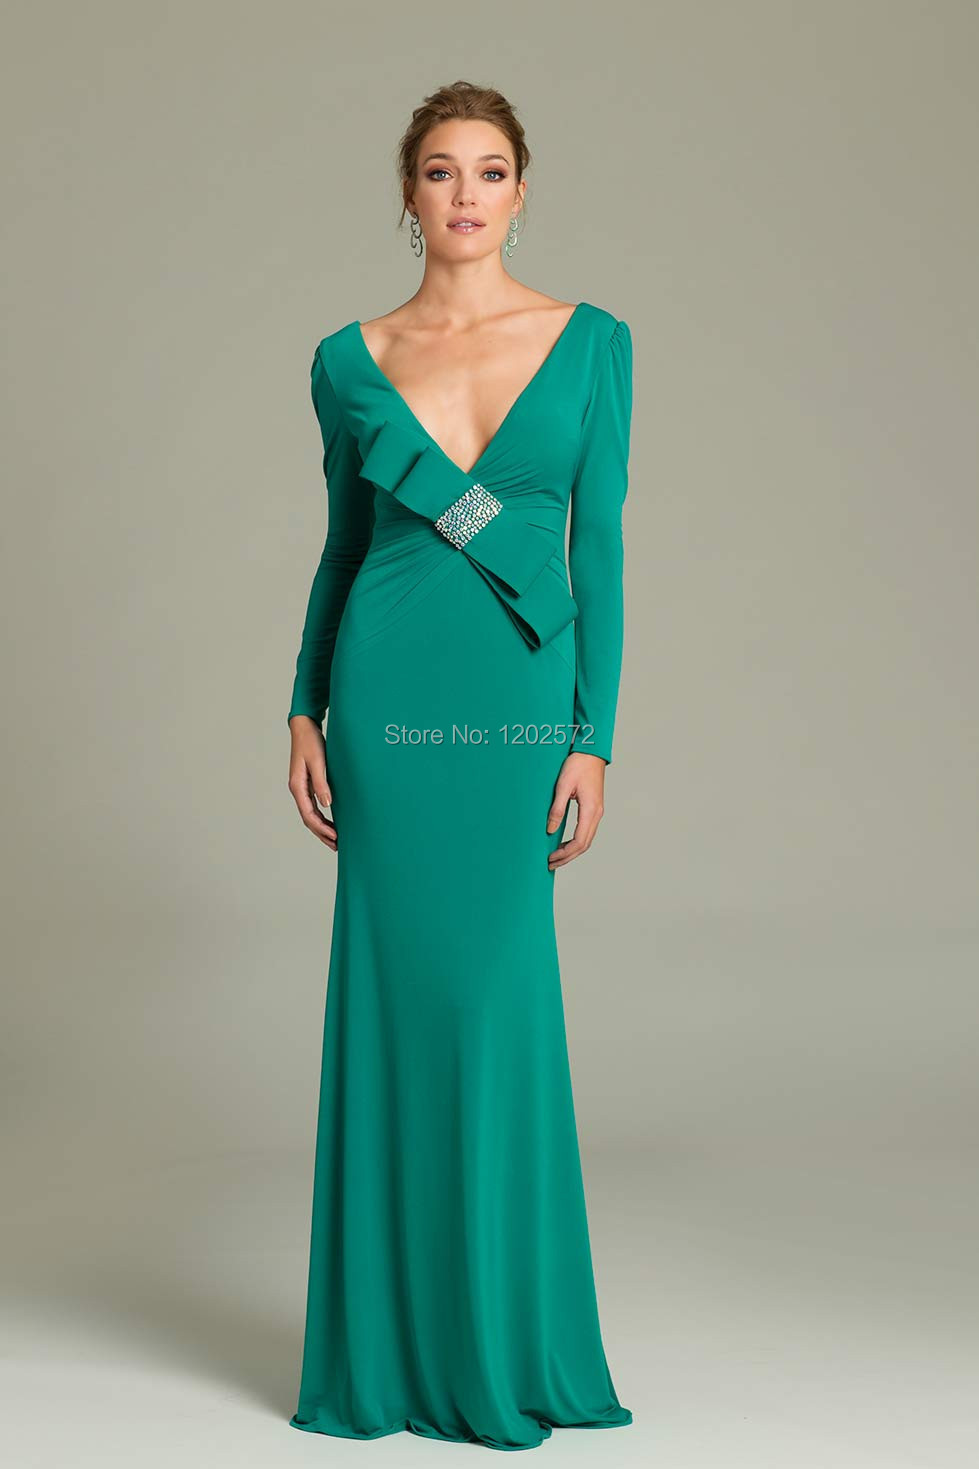 Places to buy mother of the bride dresses